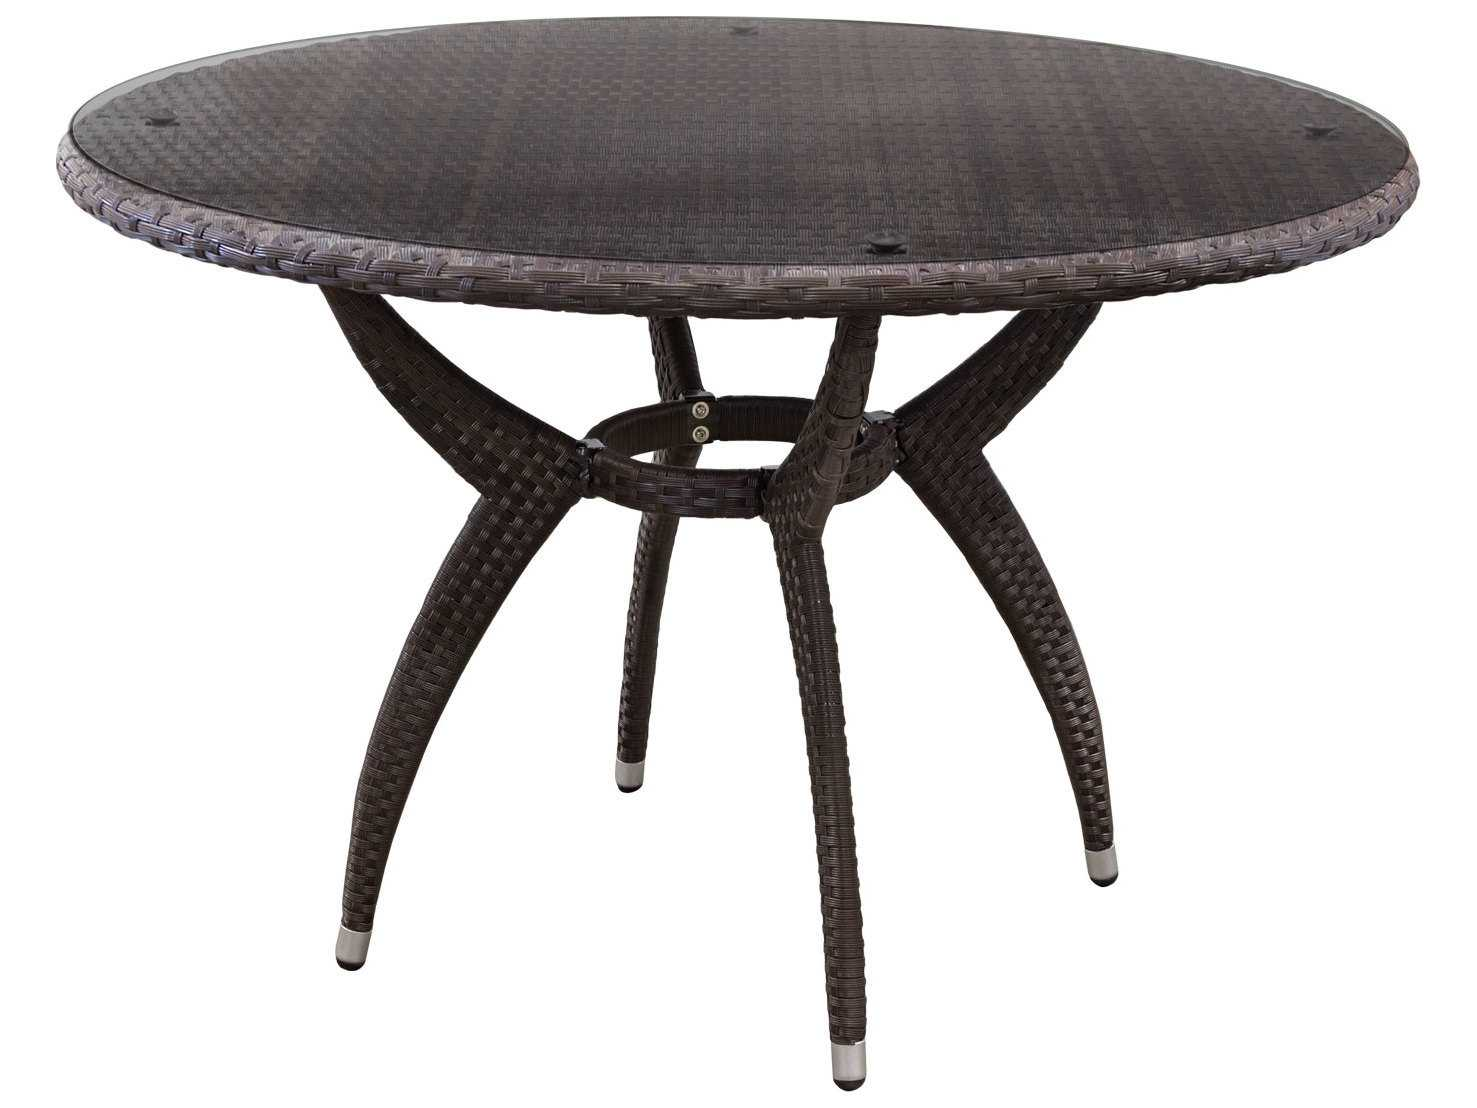 Source Outdoor Furniture Venetian Wicker 54 Round Dining Table So 2025 325